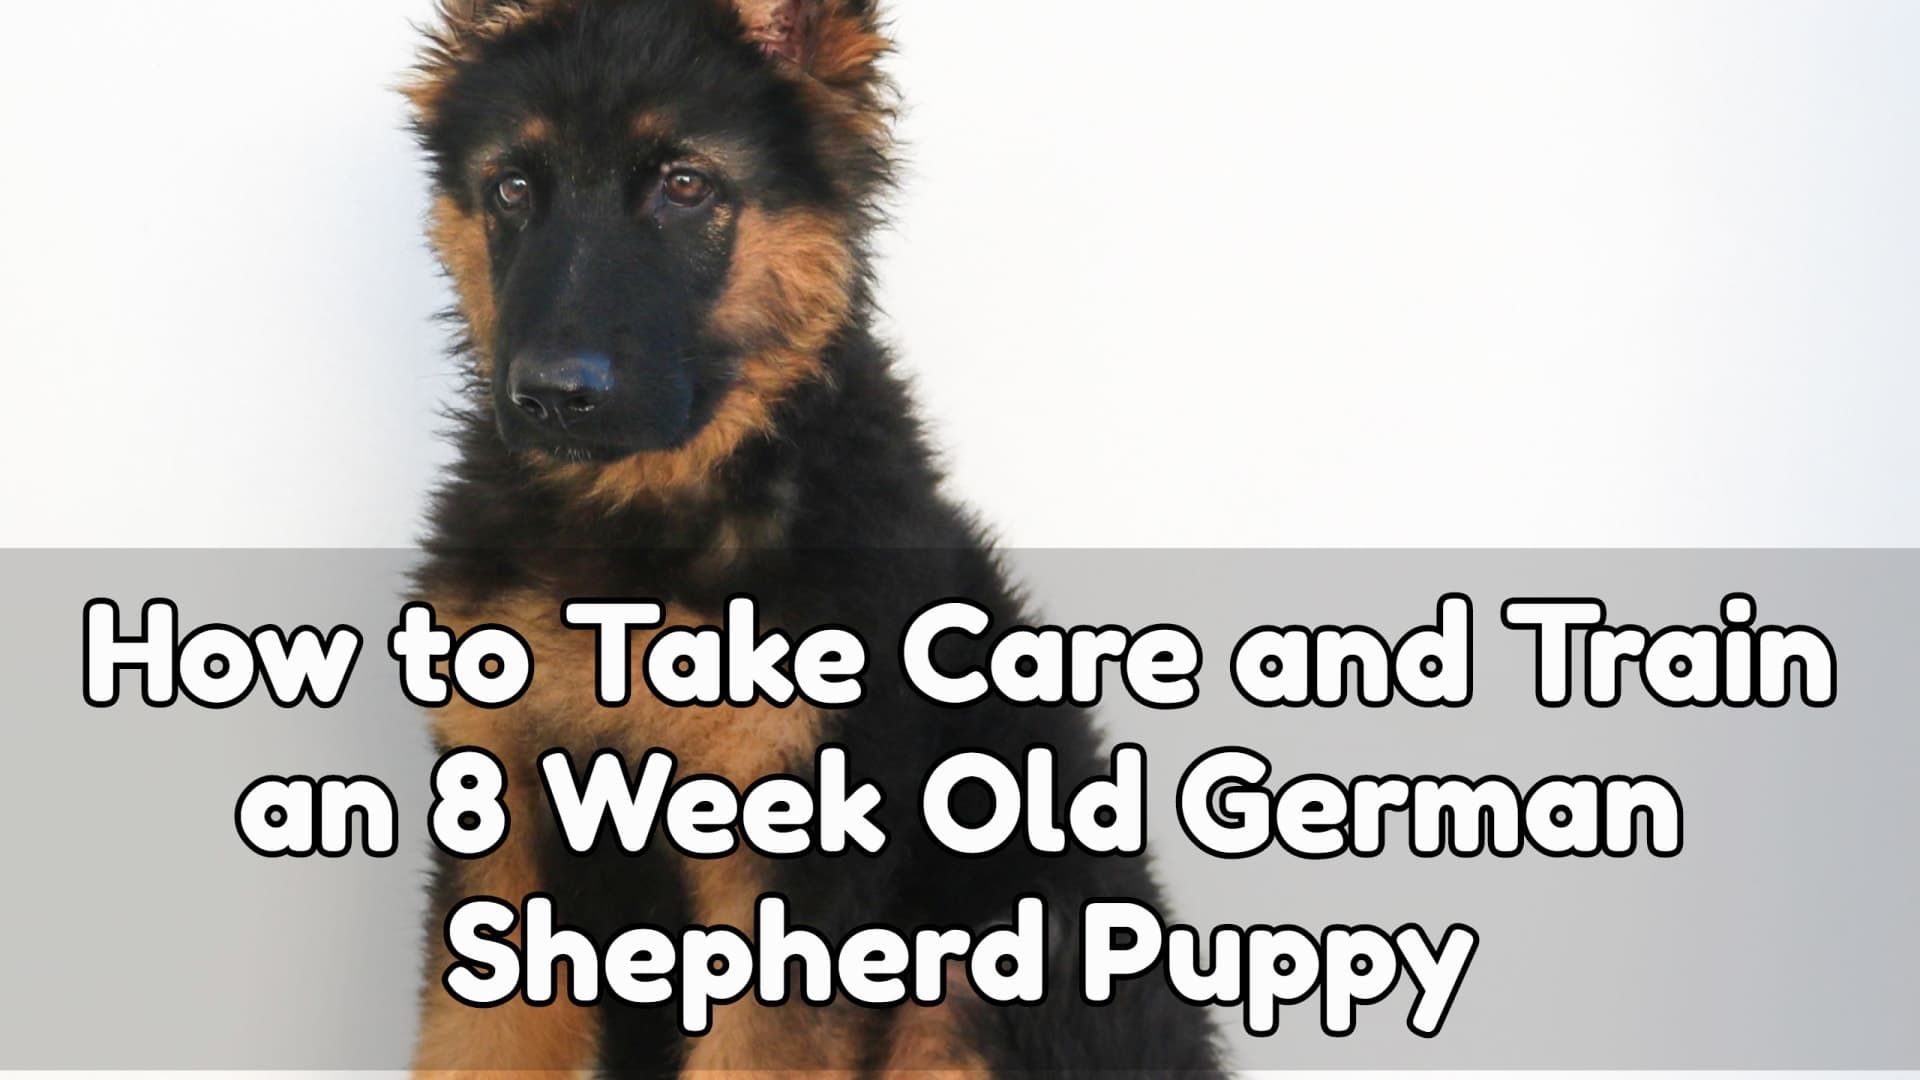 How to Take Care and Train an 8 Week Old German shepherd Puppy